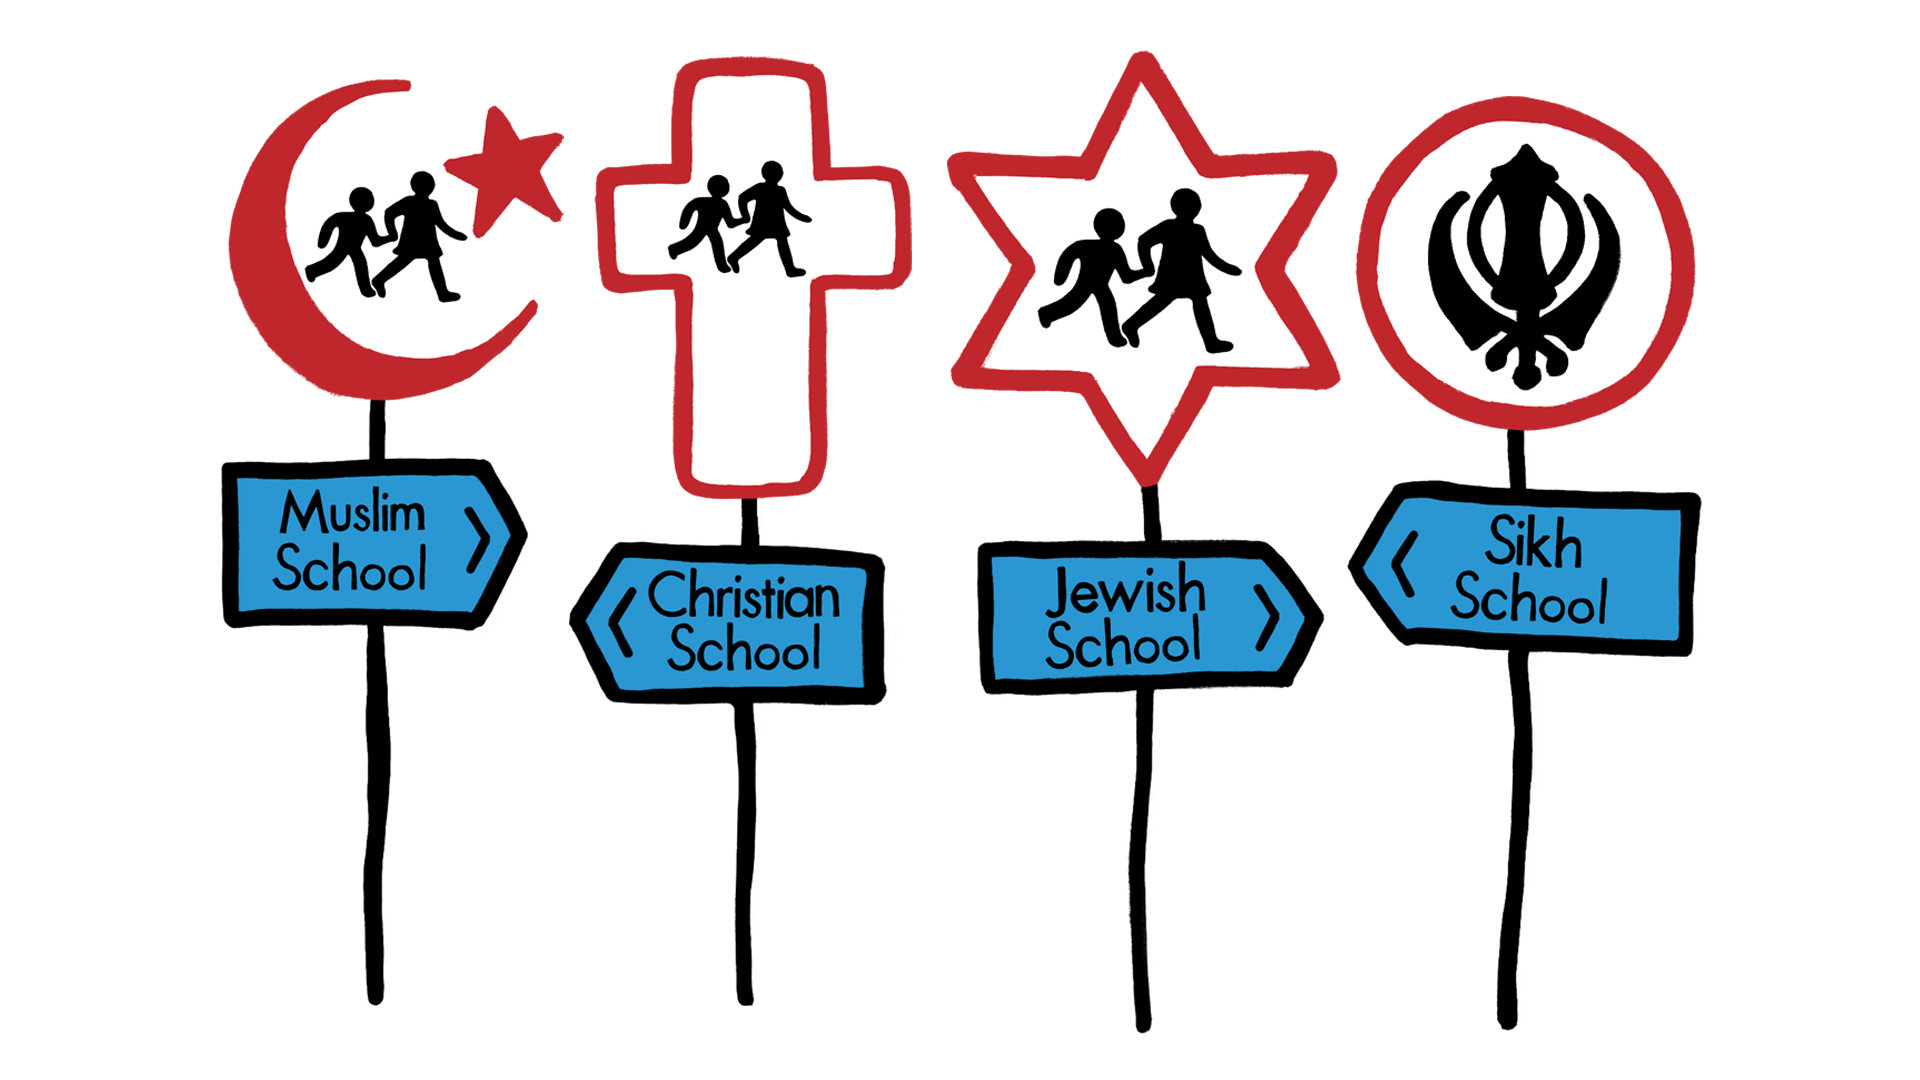 Hand drawn faith school signs